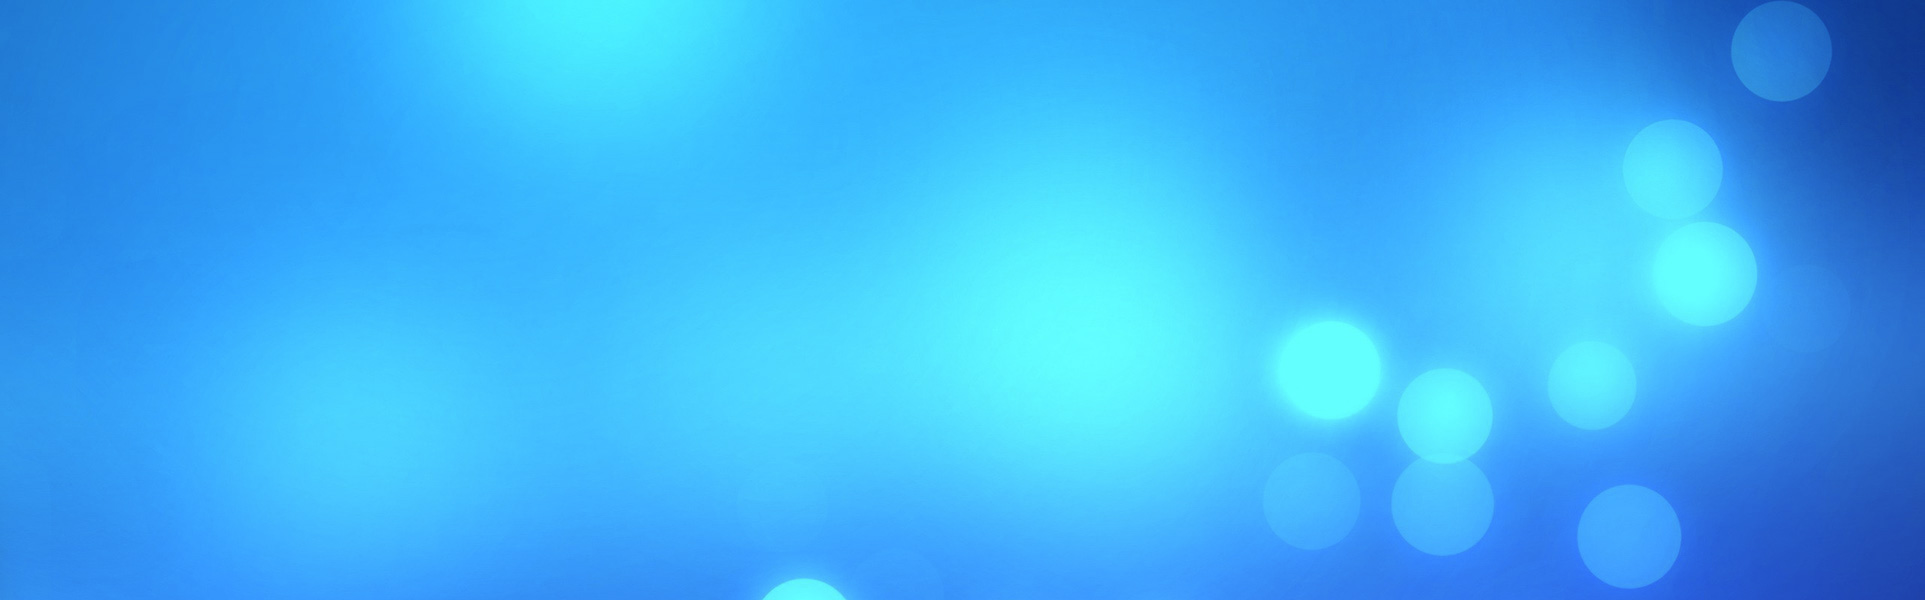 blue-background